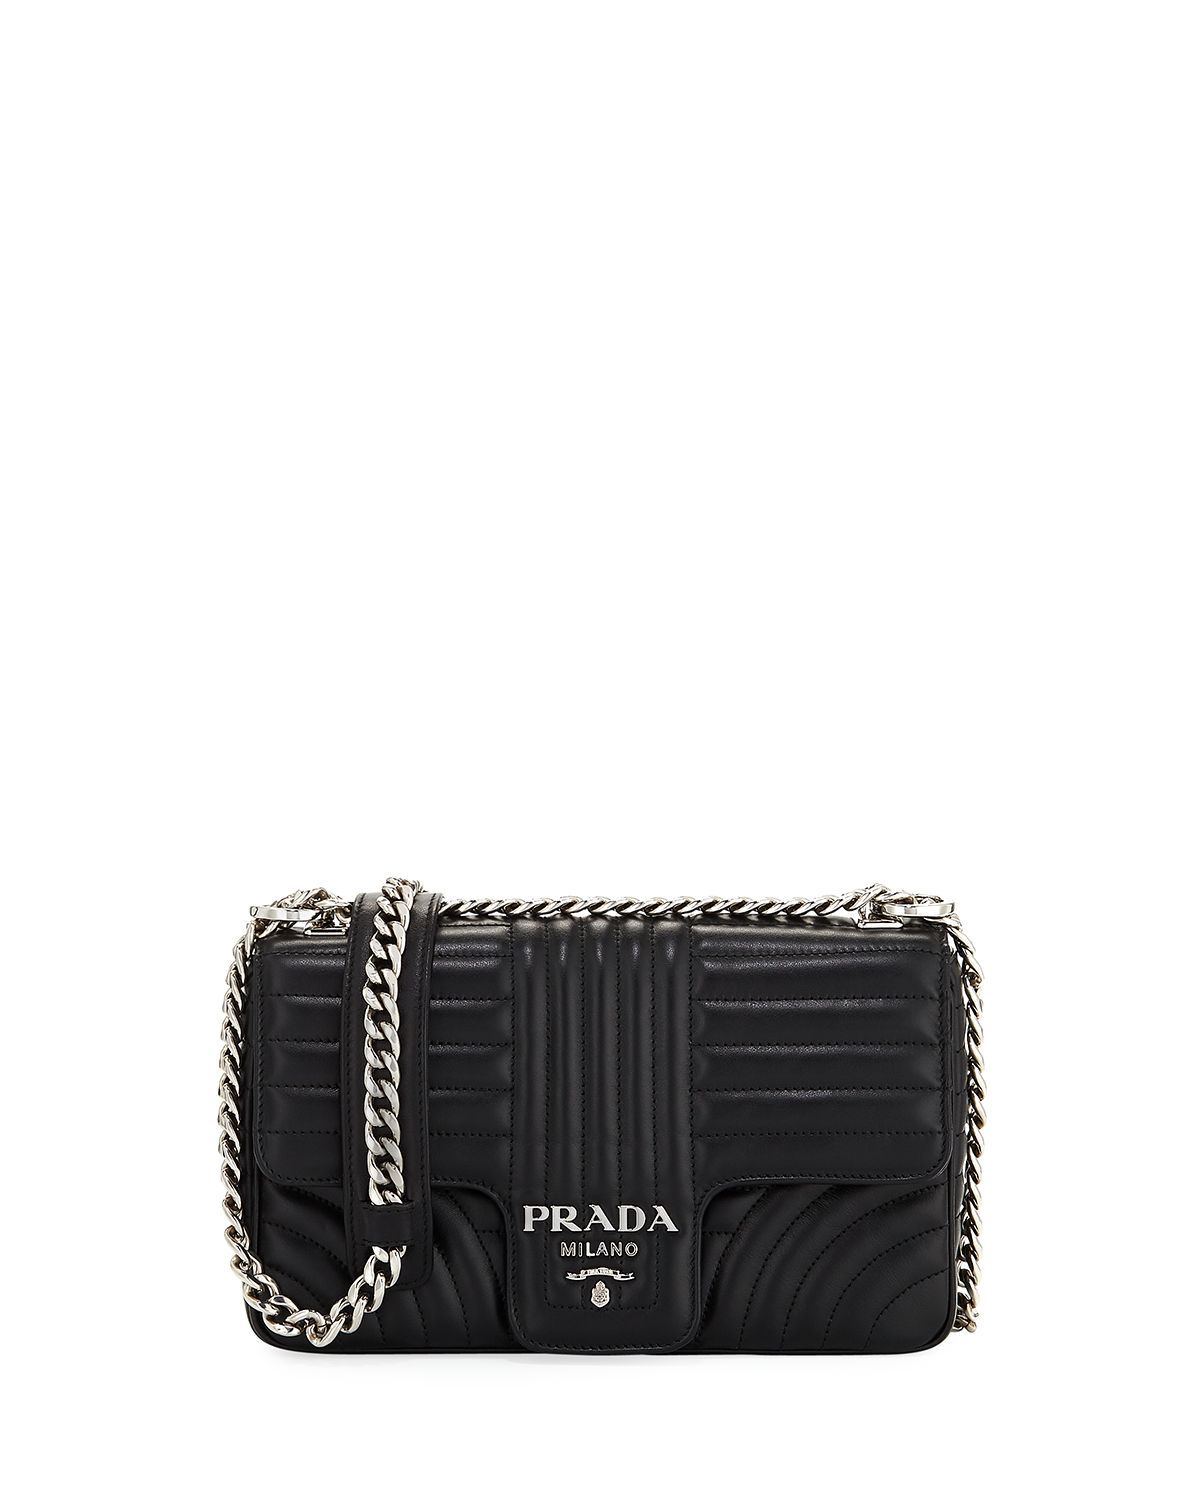 330537f5fb1a Prada Medium Diagramme Shoulder Bag | Neiman Marcus